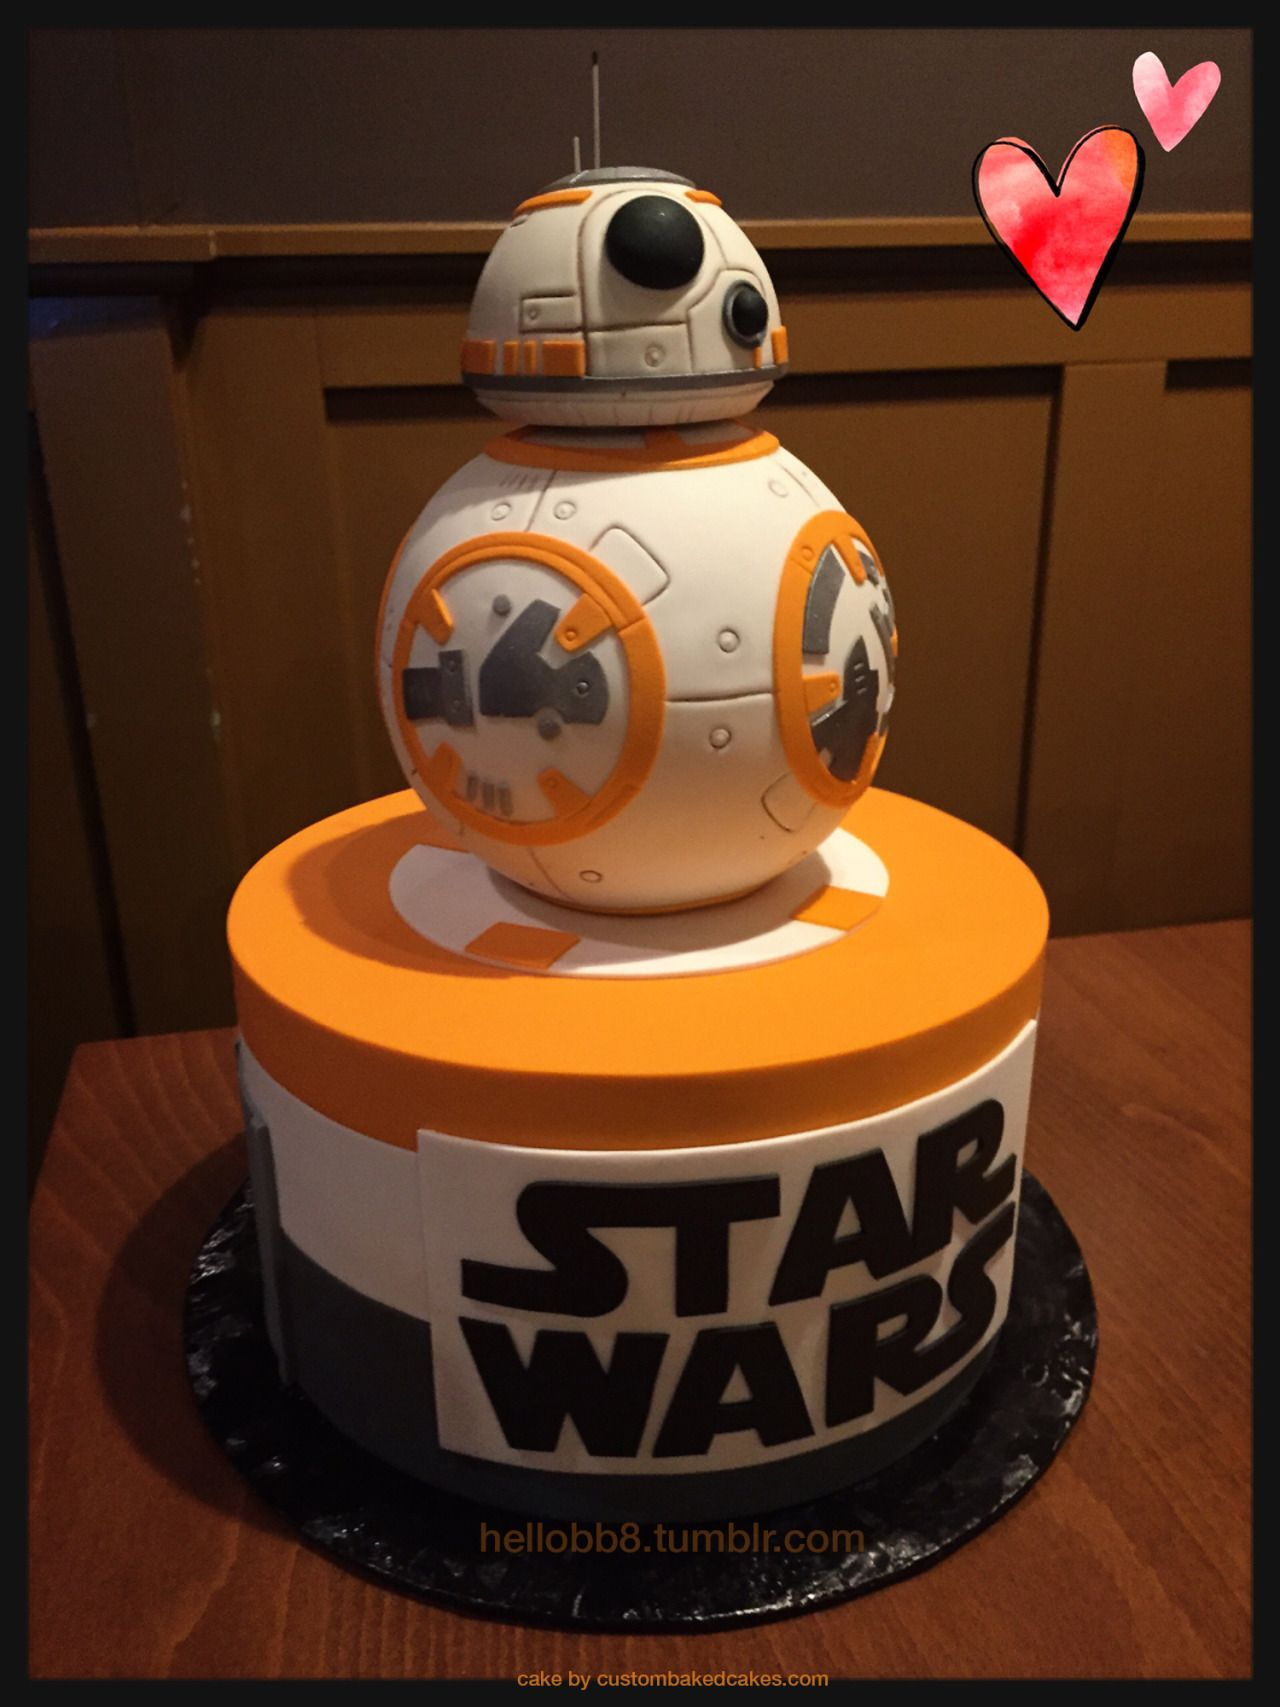 This Is The Best Cake Ever To Kick Off My Birthday Week So Presented Me Beautifully Done Bb 8 While We Were At Lunch With Family